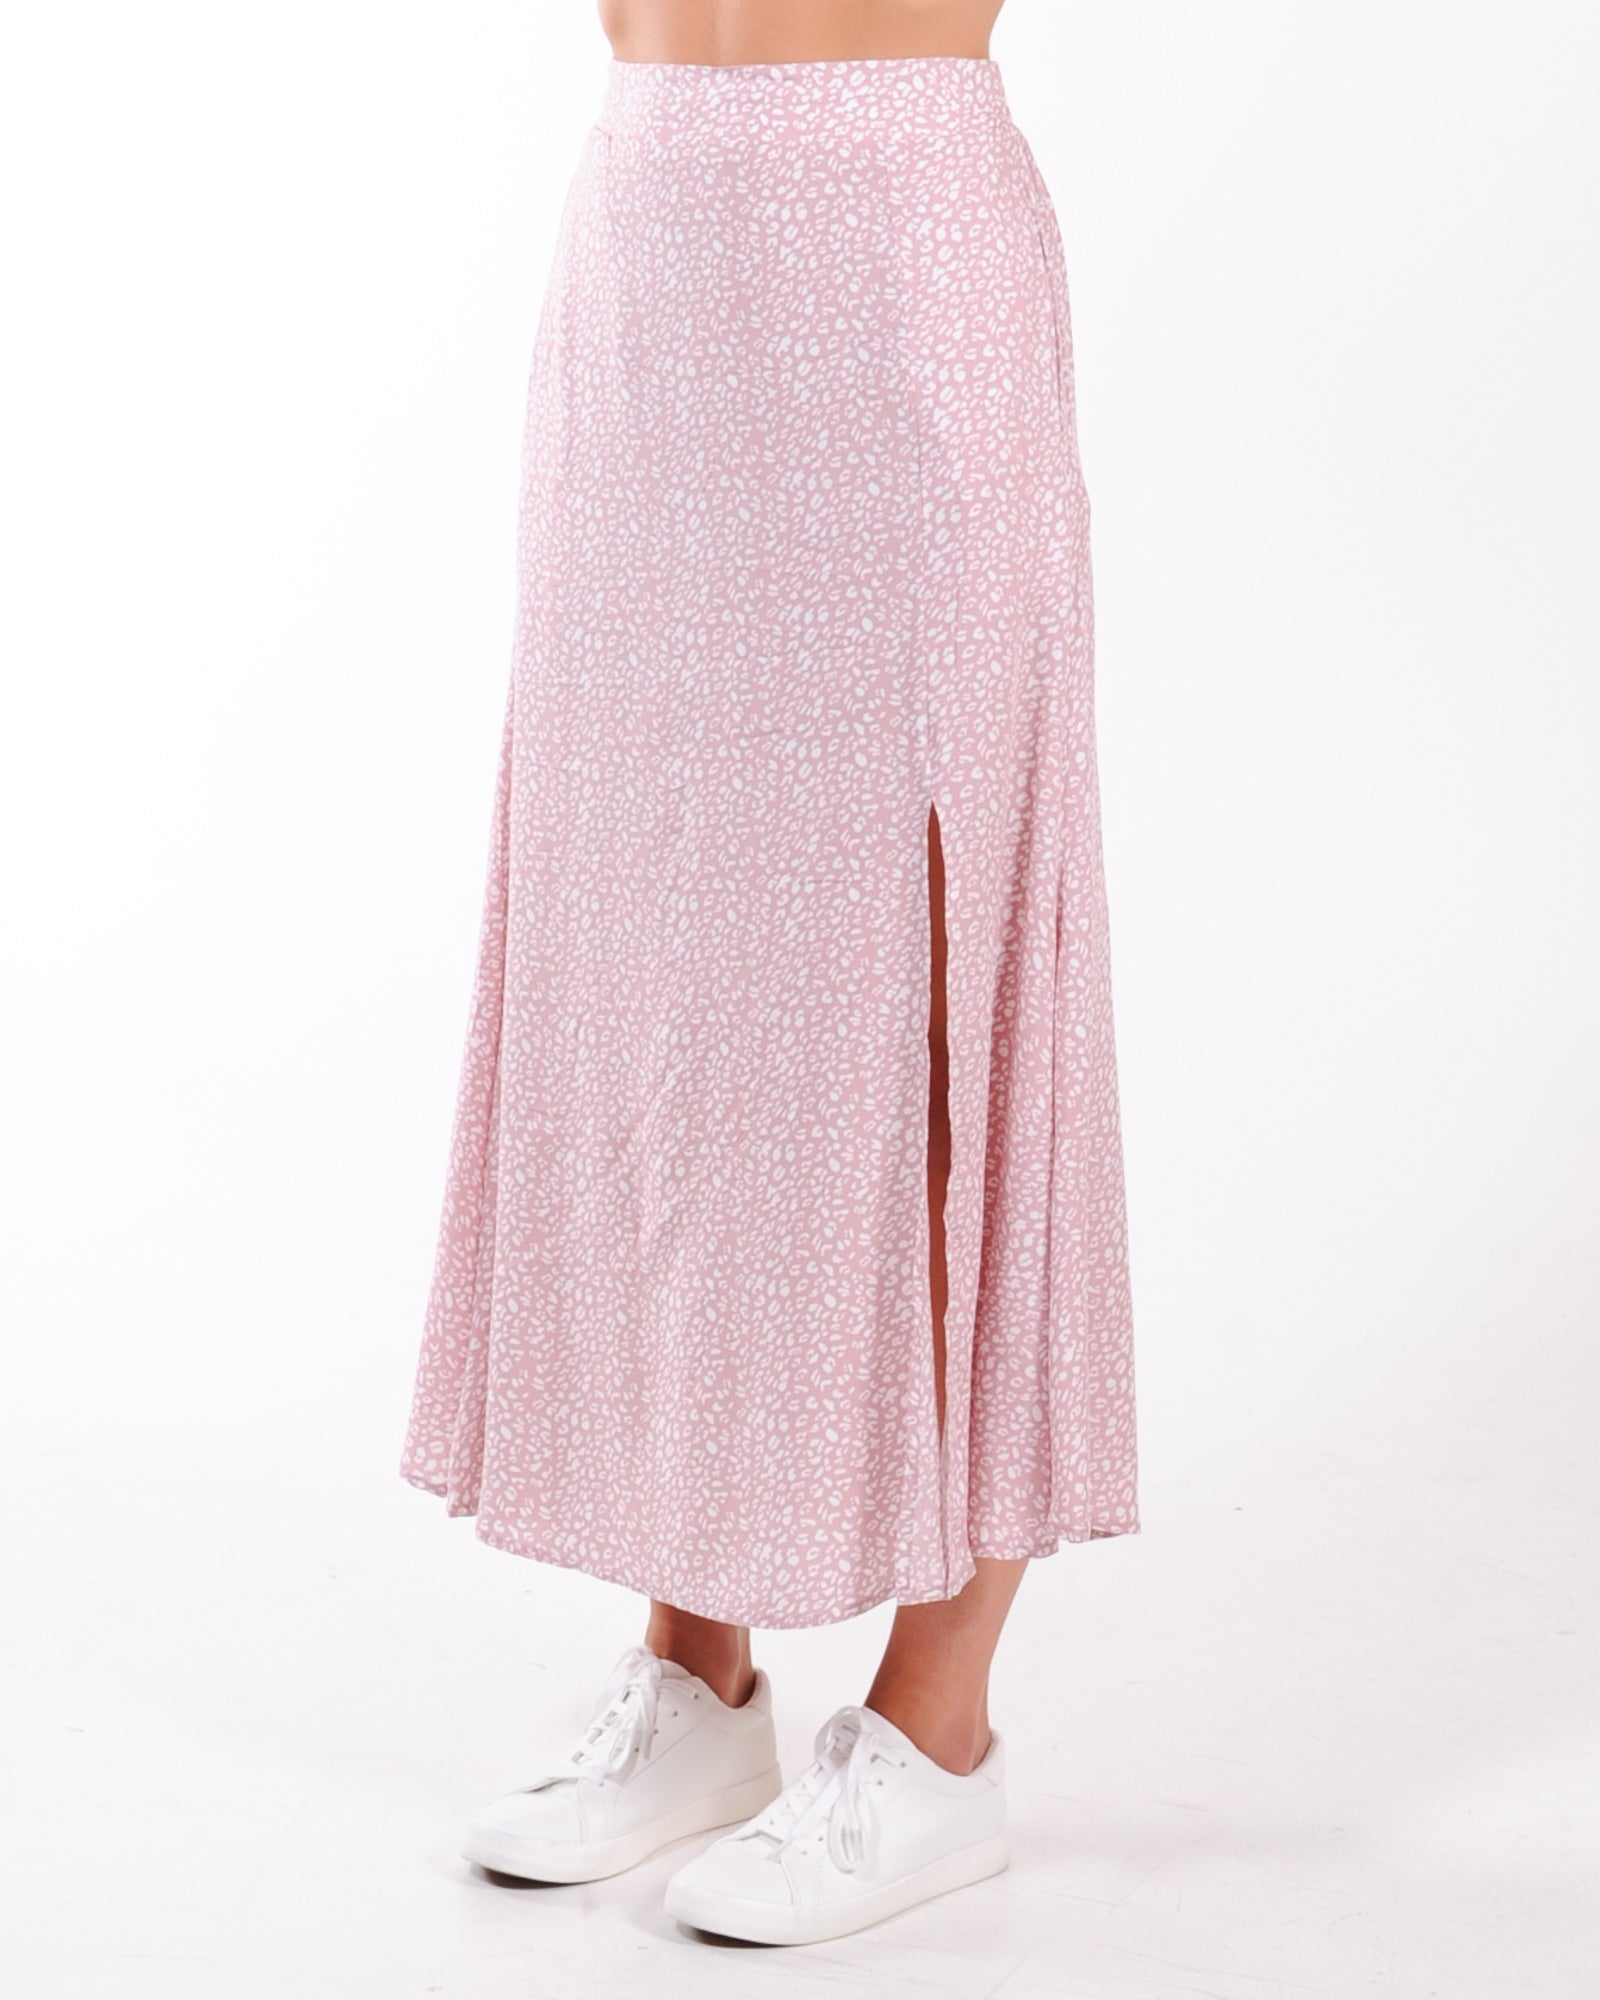 Lost In Time Midi Skirt - Pink